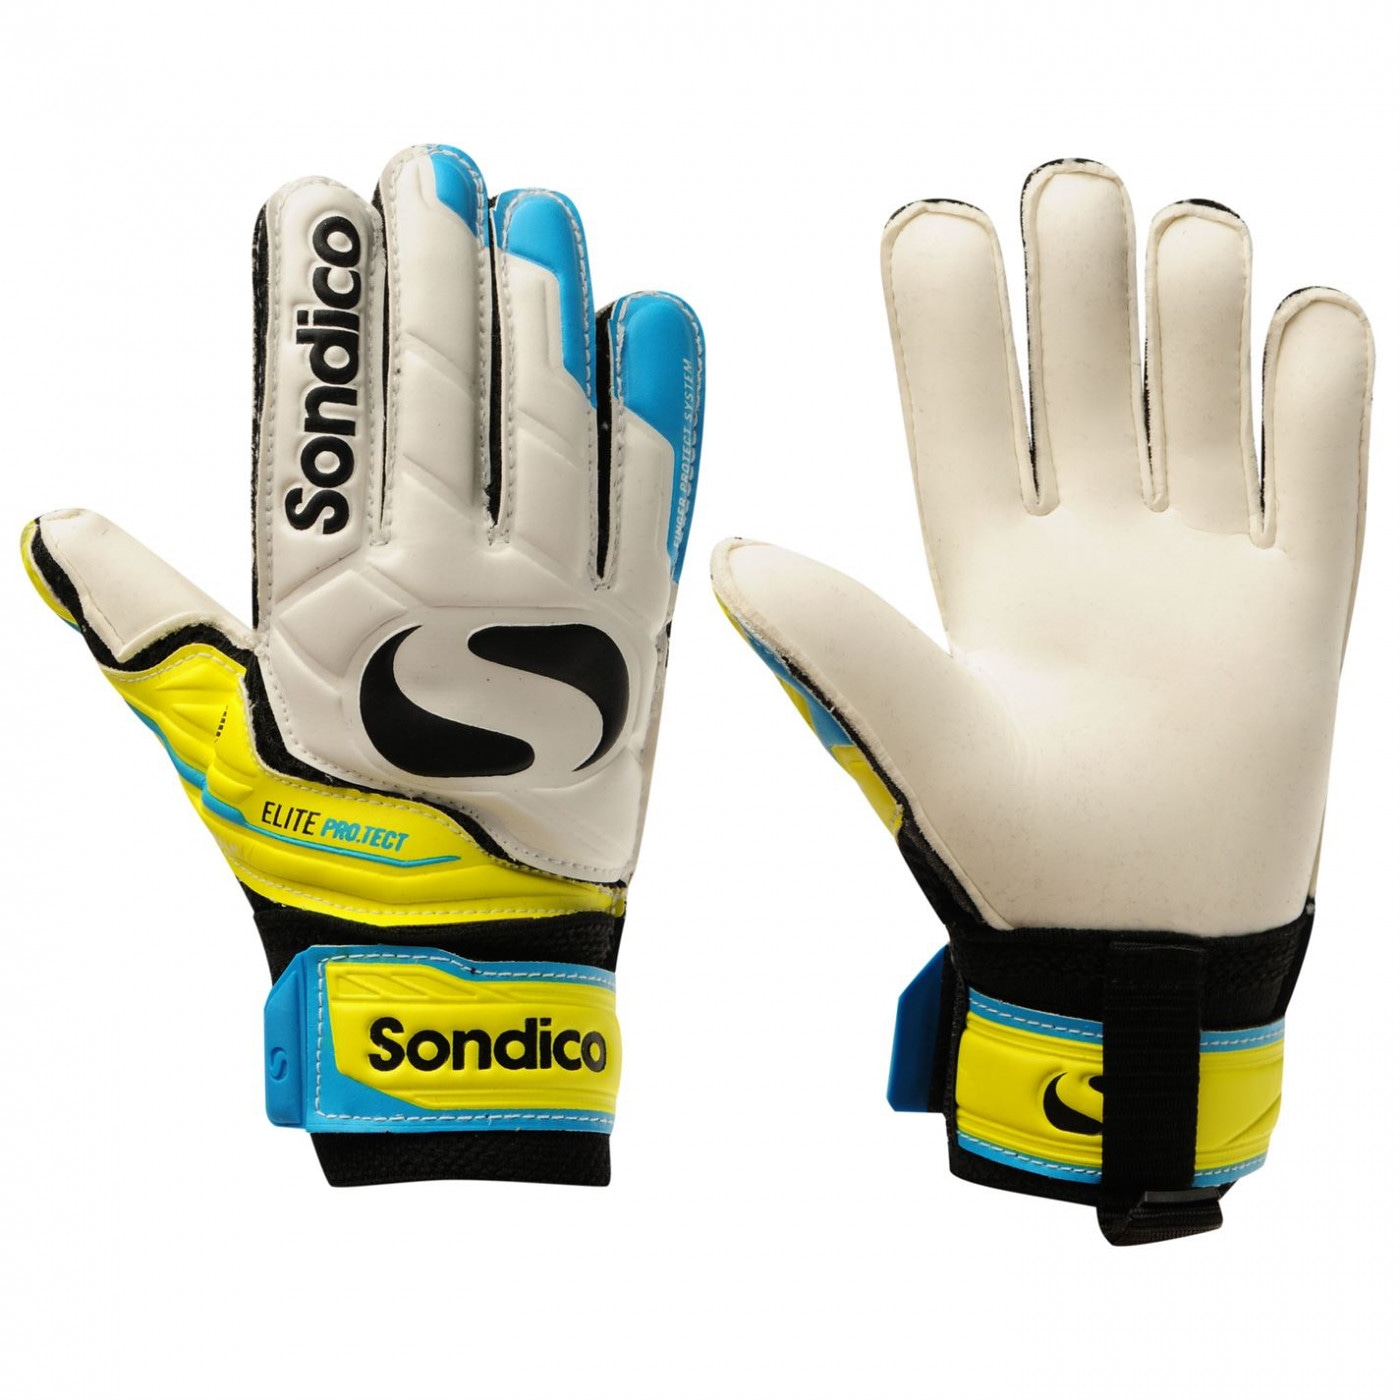 Sondico Elite Protech Goalkeeper Gloves Junior